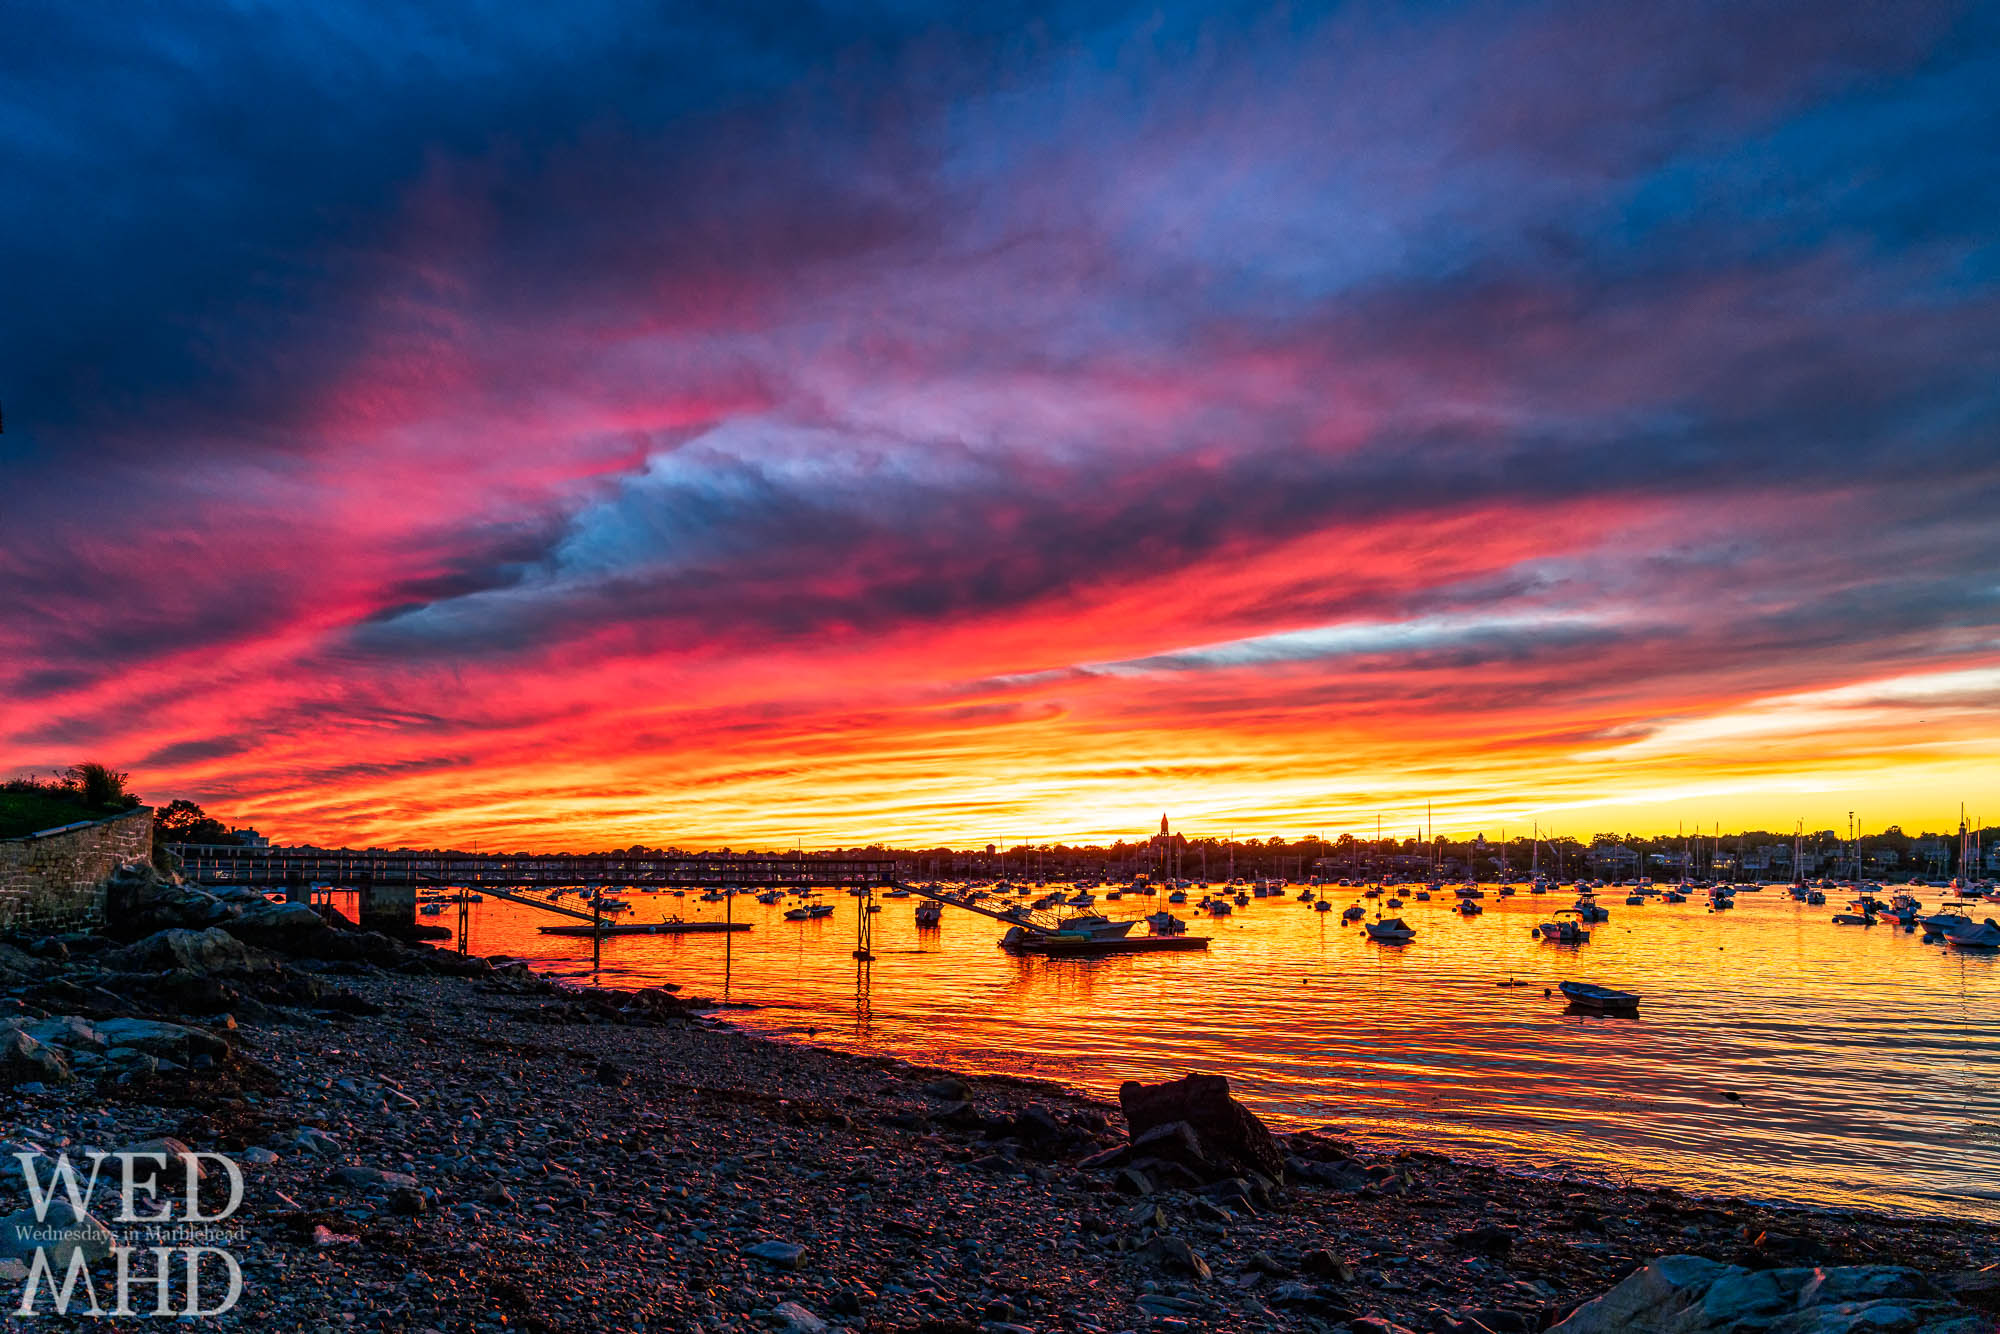 A vibrant September sunset forms over Marblehead harbor as viewed at low tide from the end of Peabody Lane on the Neck